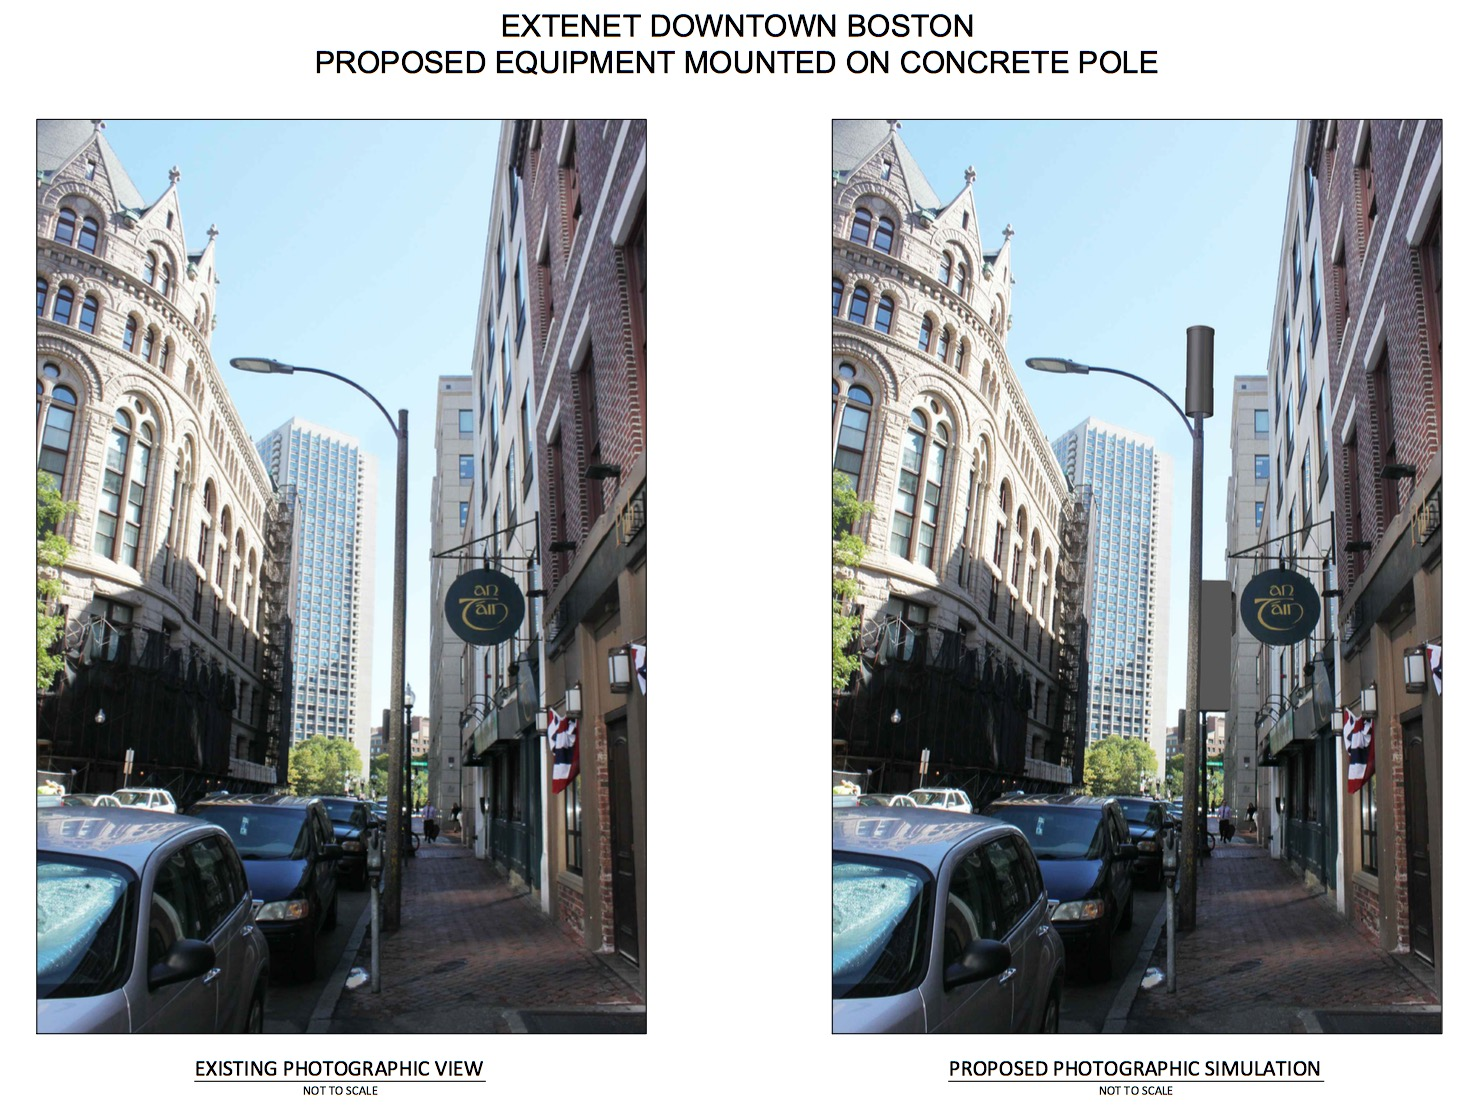 Street Light Wireless Antennas Coming To North End And